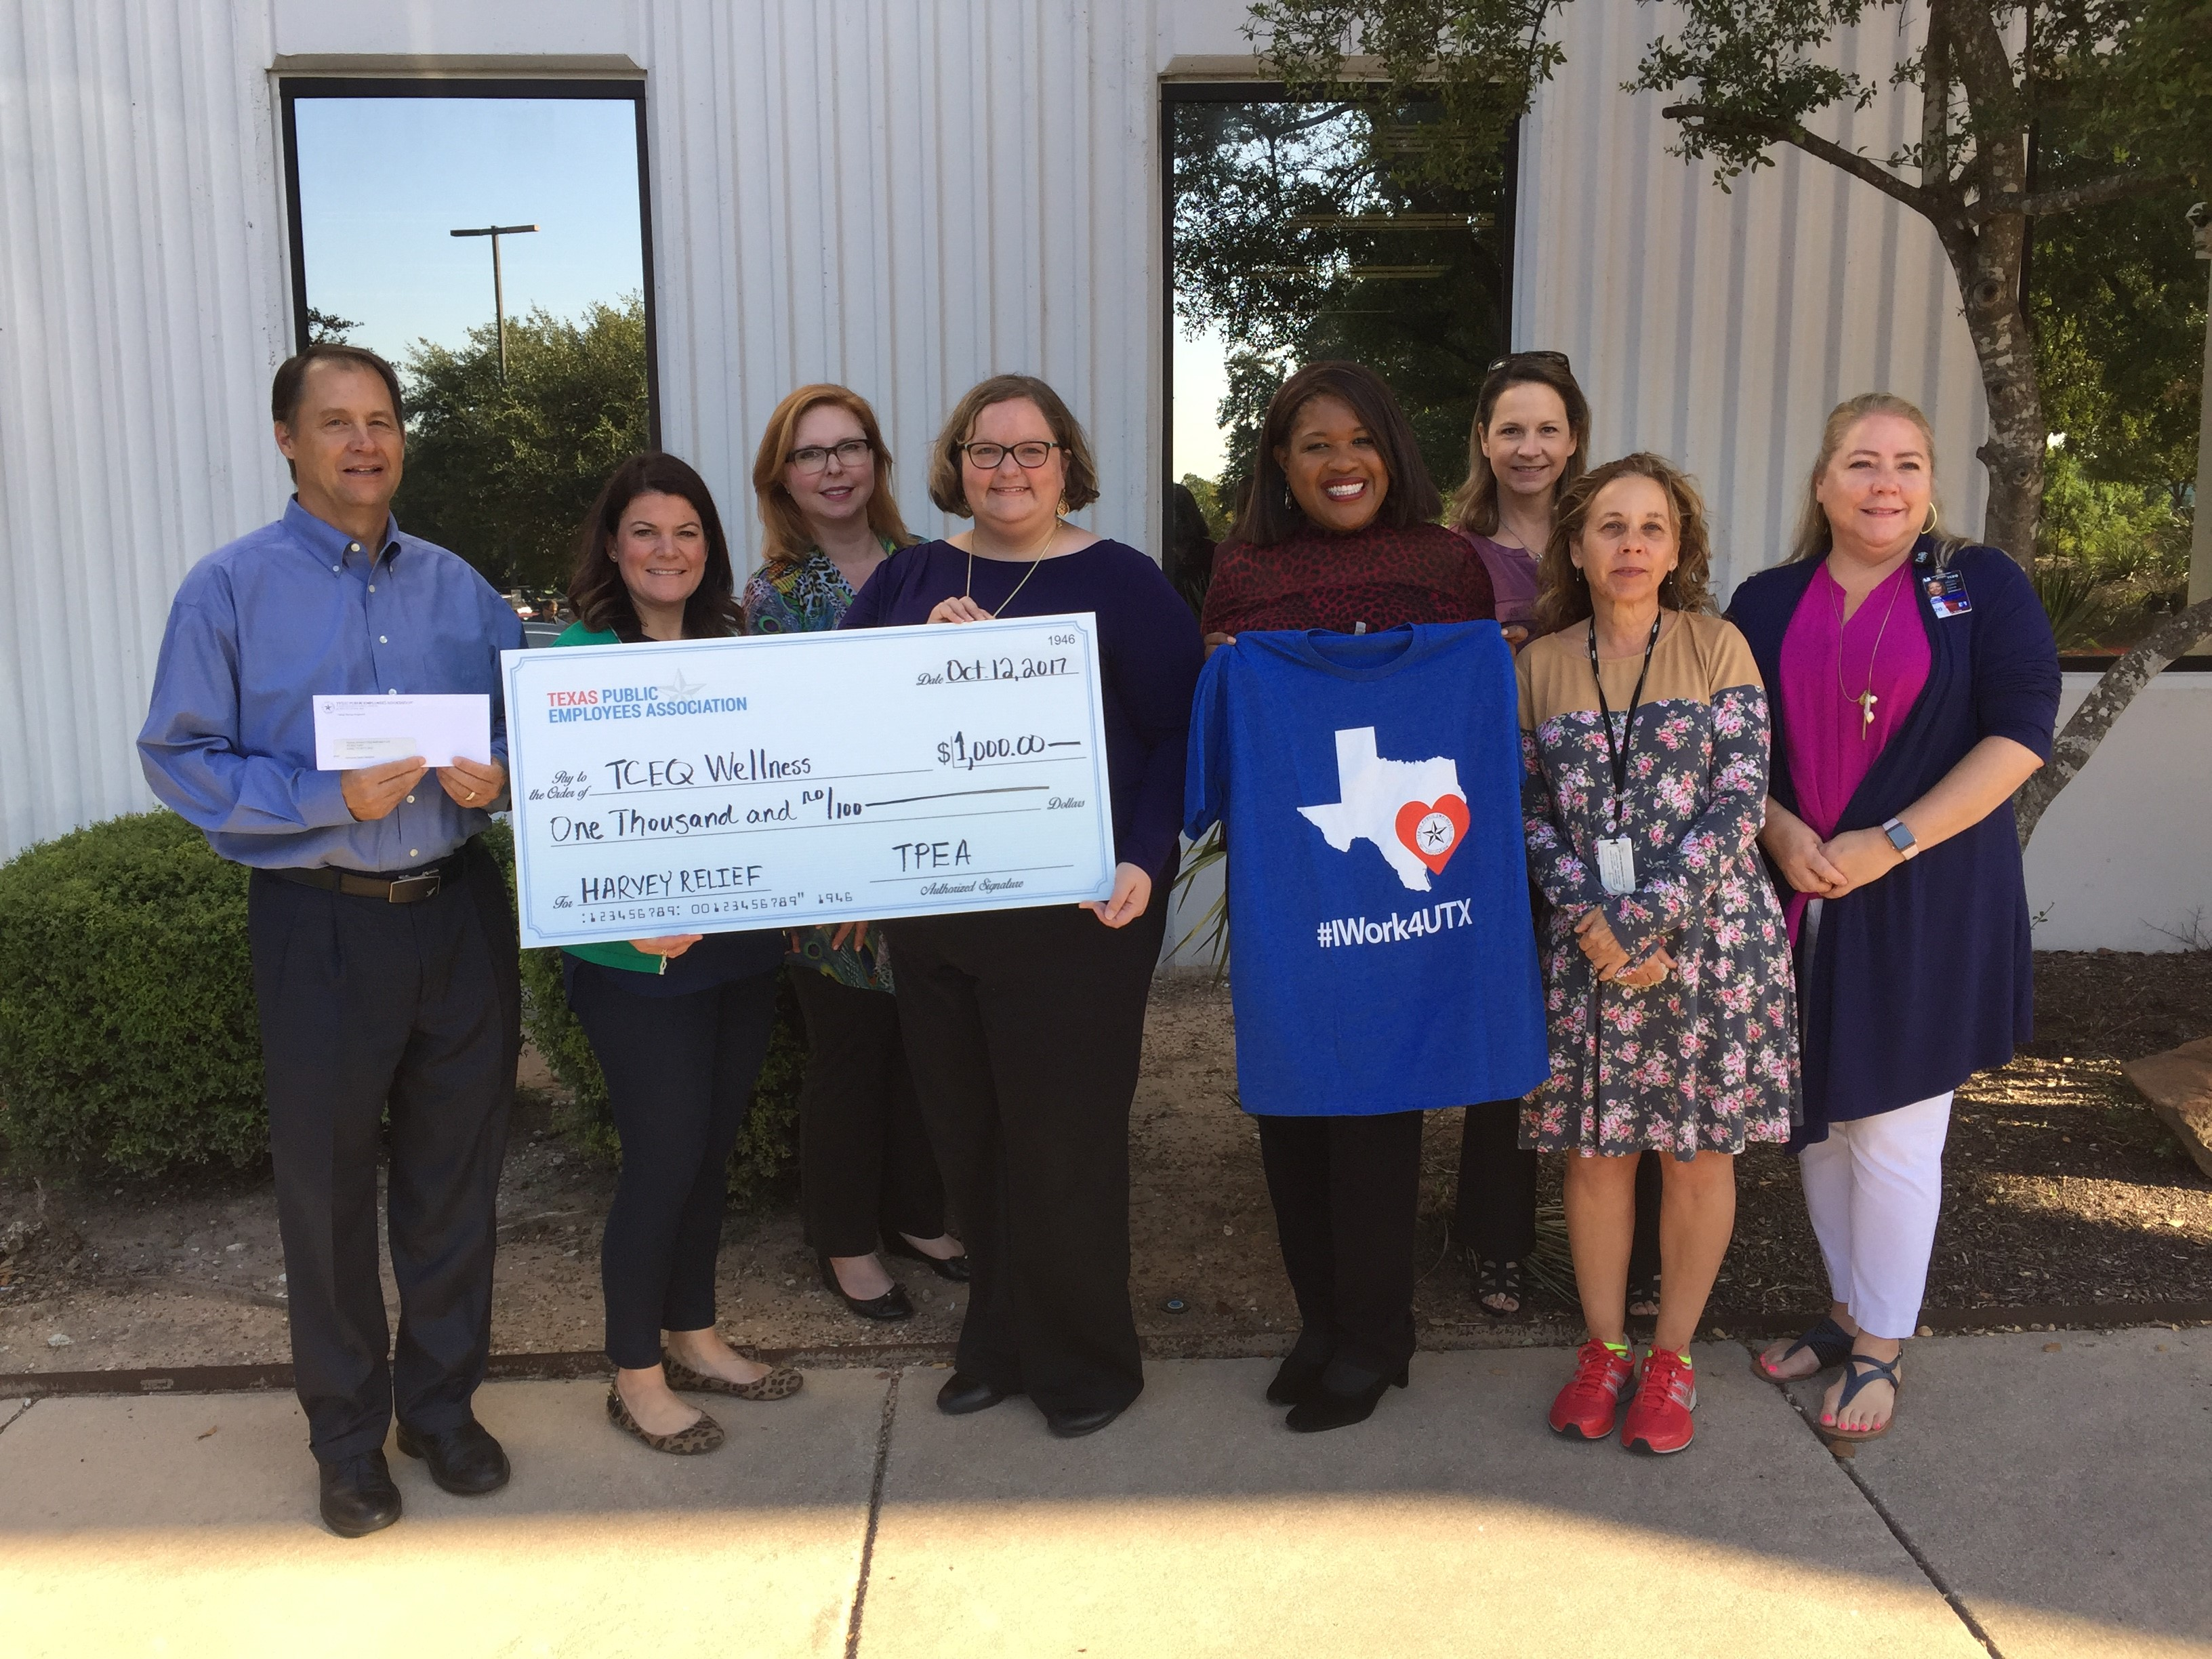 Personnel from the TCEQ Hurricane Relief Committee accept a gift from the Texas Public Employees Association.